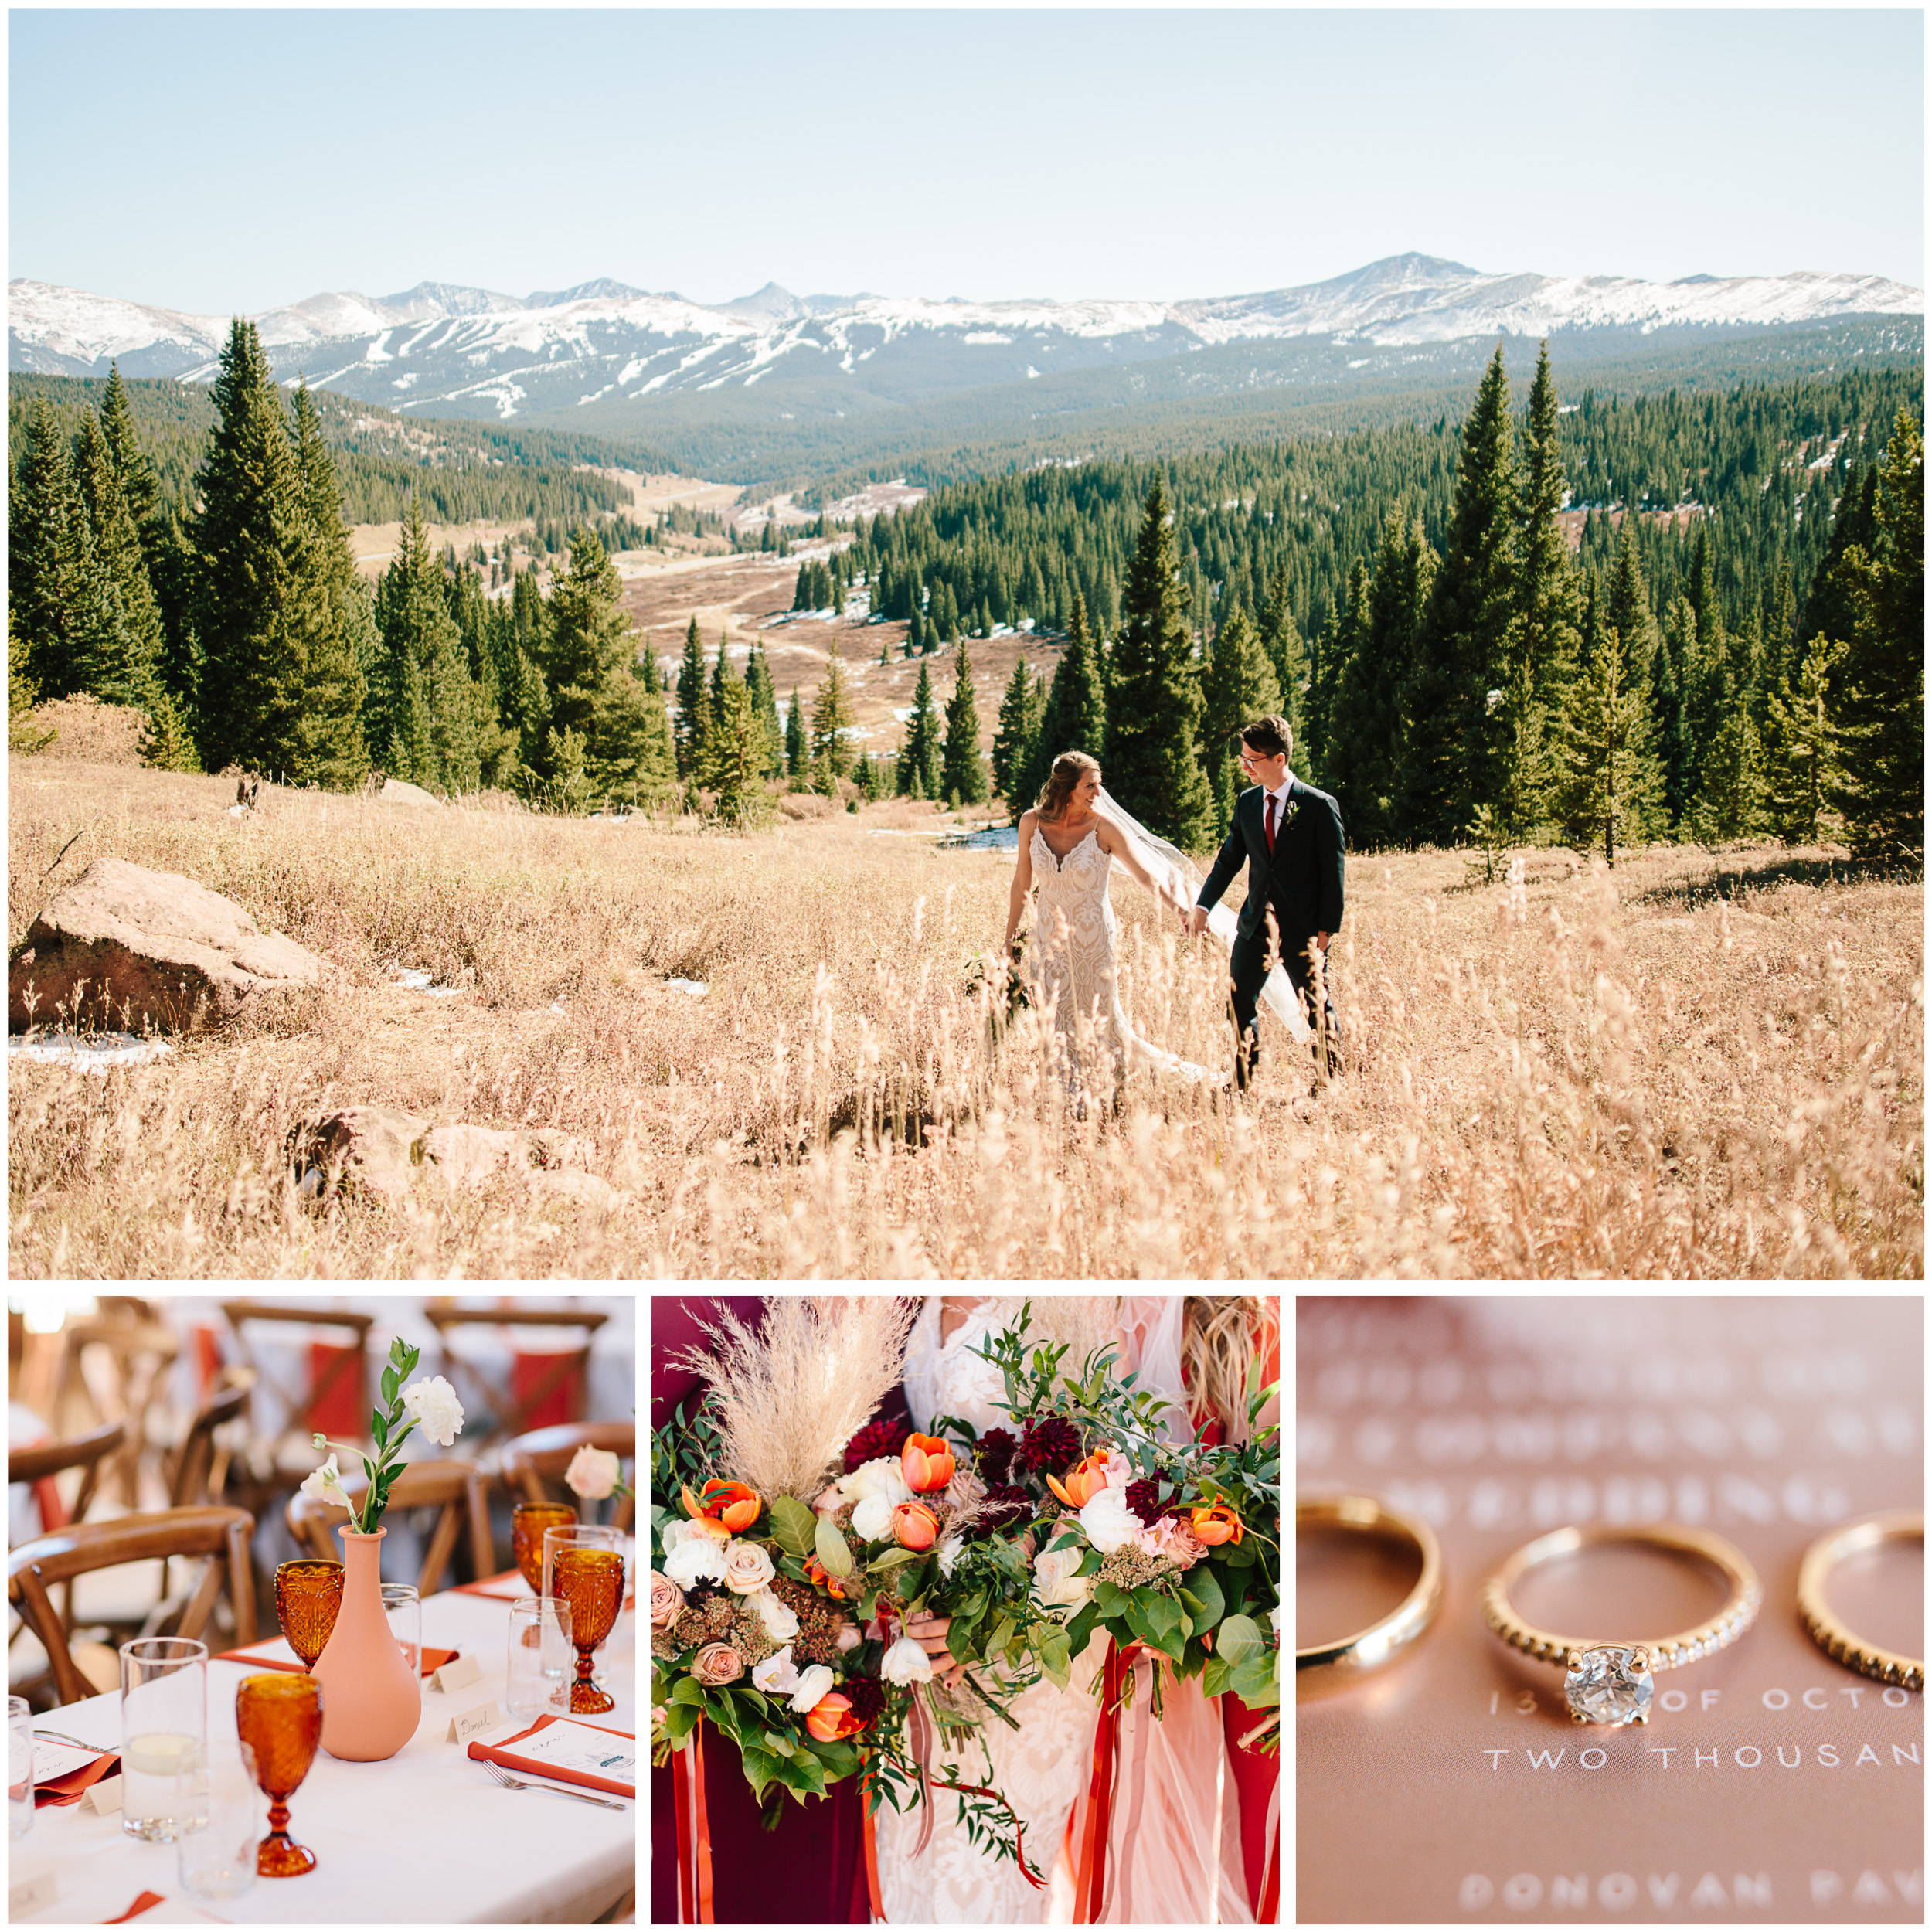 vail_colorado_wedding_header4.jpg